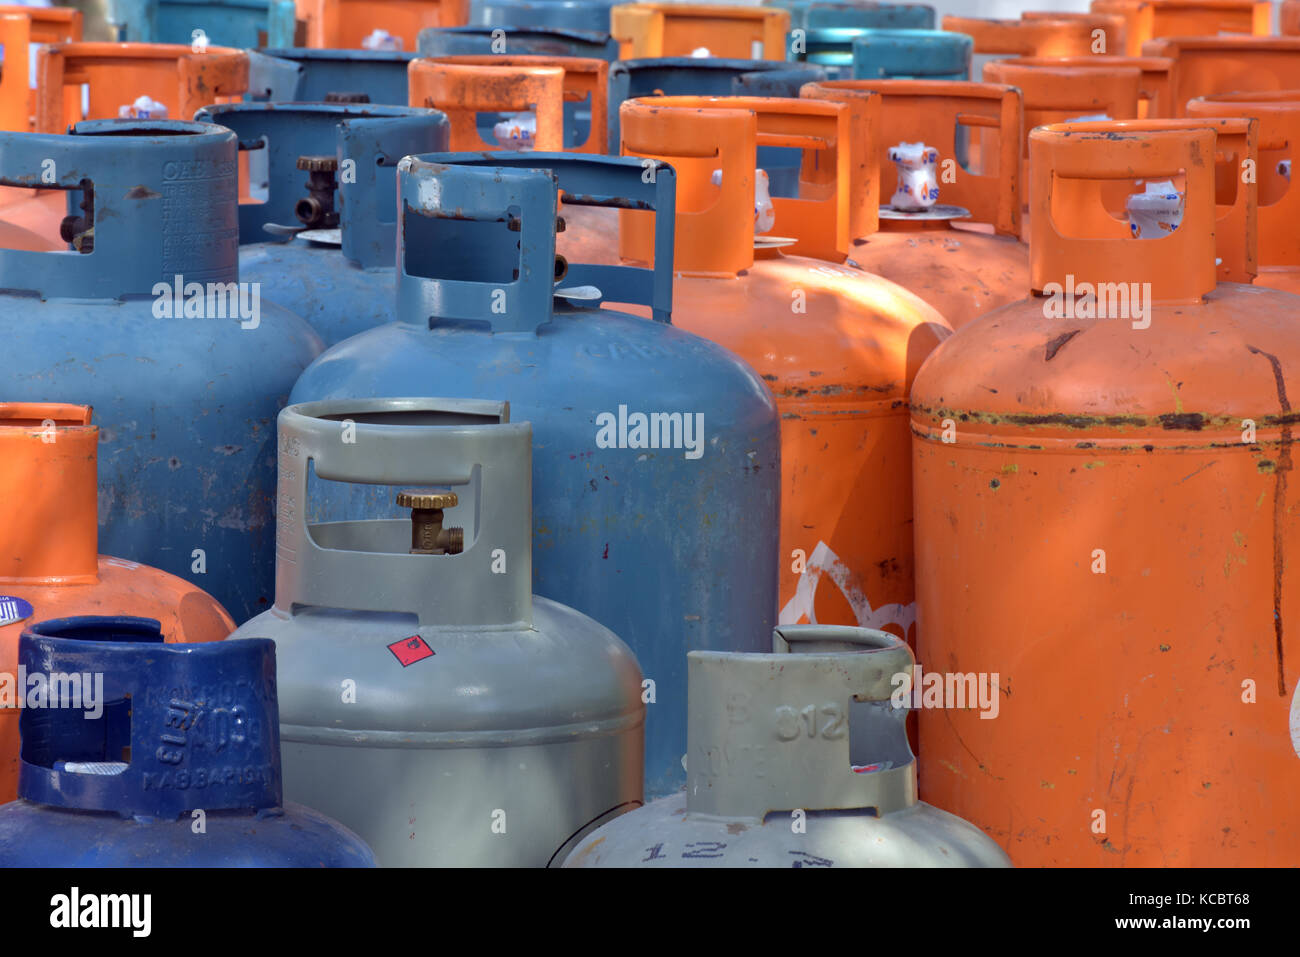 Camping gas bottles on the back of a lorry lined or stacked in patterns and painted blue and orange. Butane gas - Stock Image